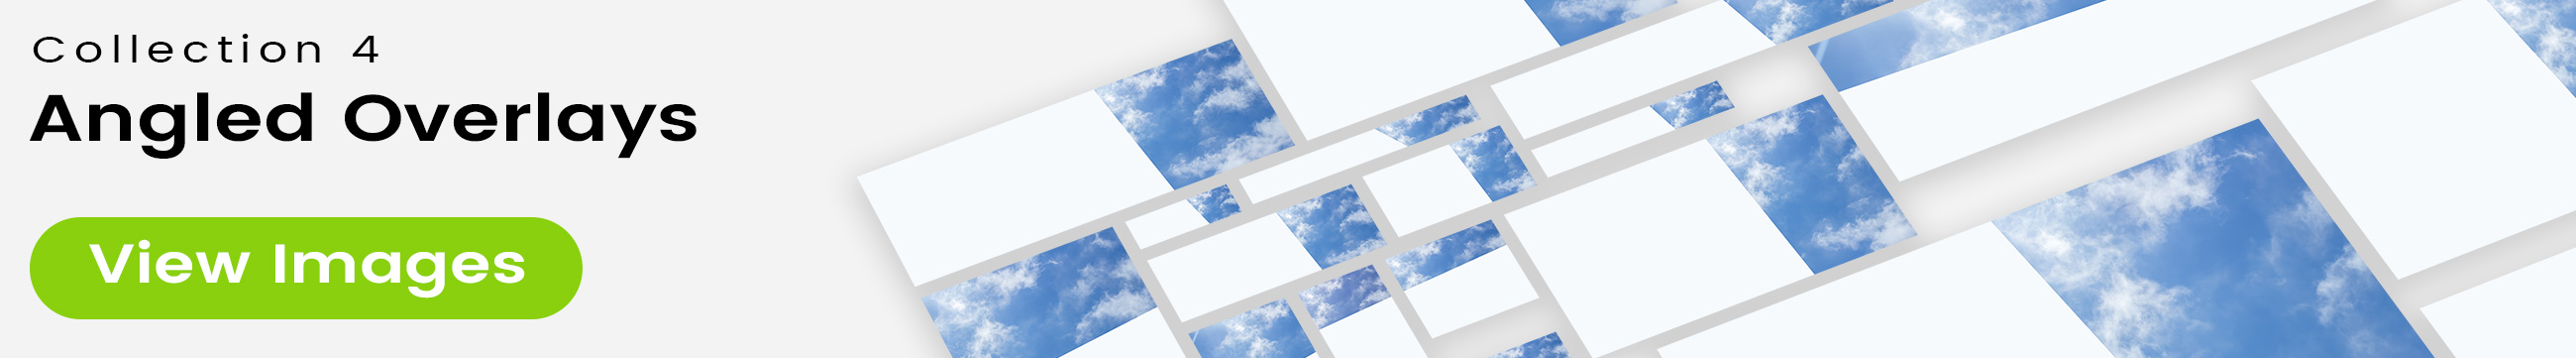 See 25 bonus images included with clouds stock image 9483. Collection 4 of 4 features an angled overlay design customized with a color that complements each photo.